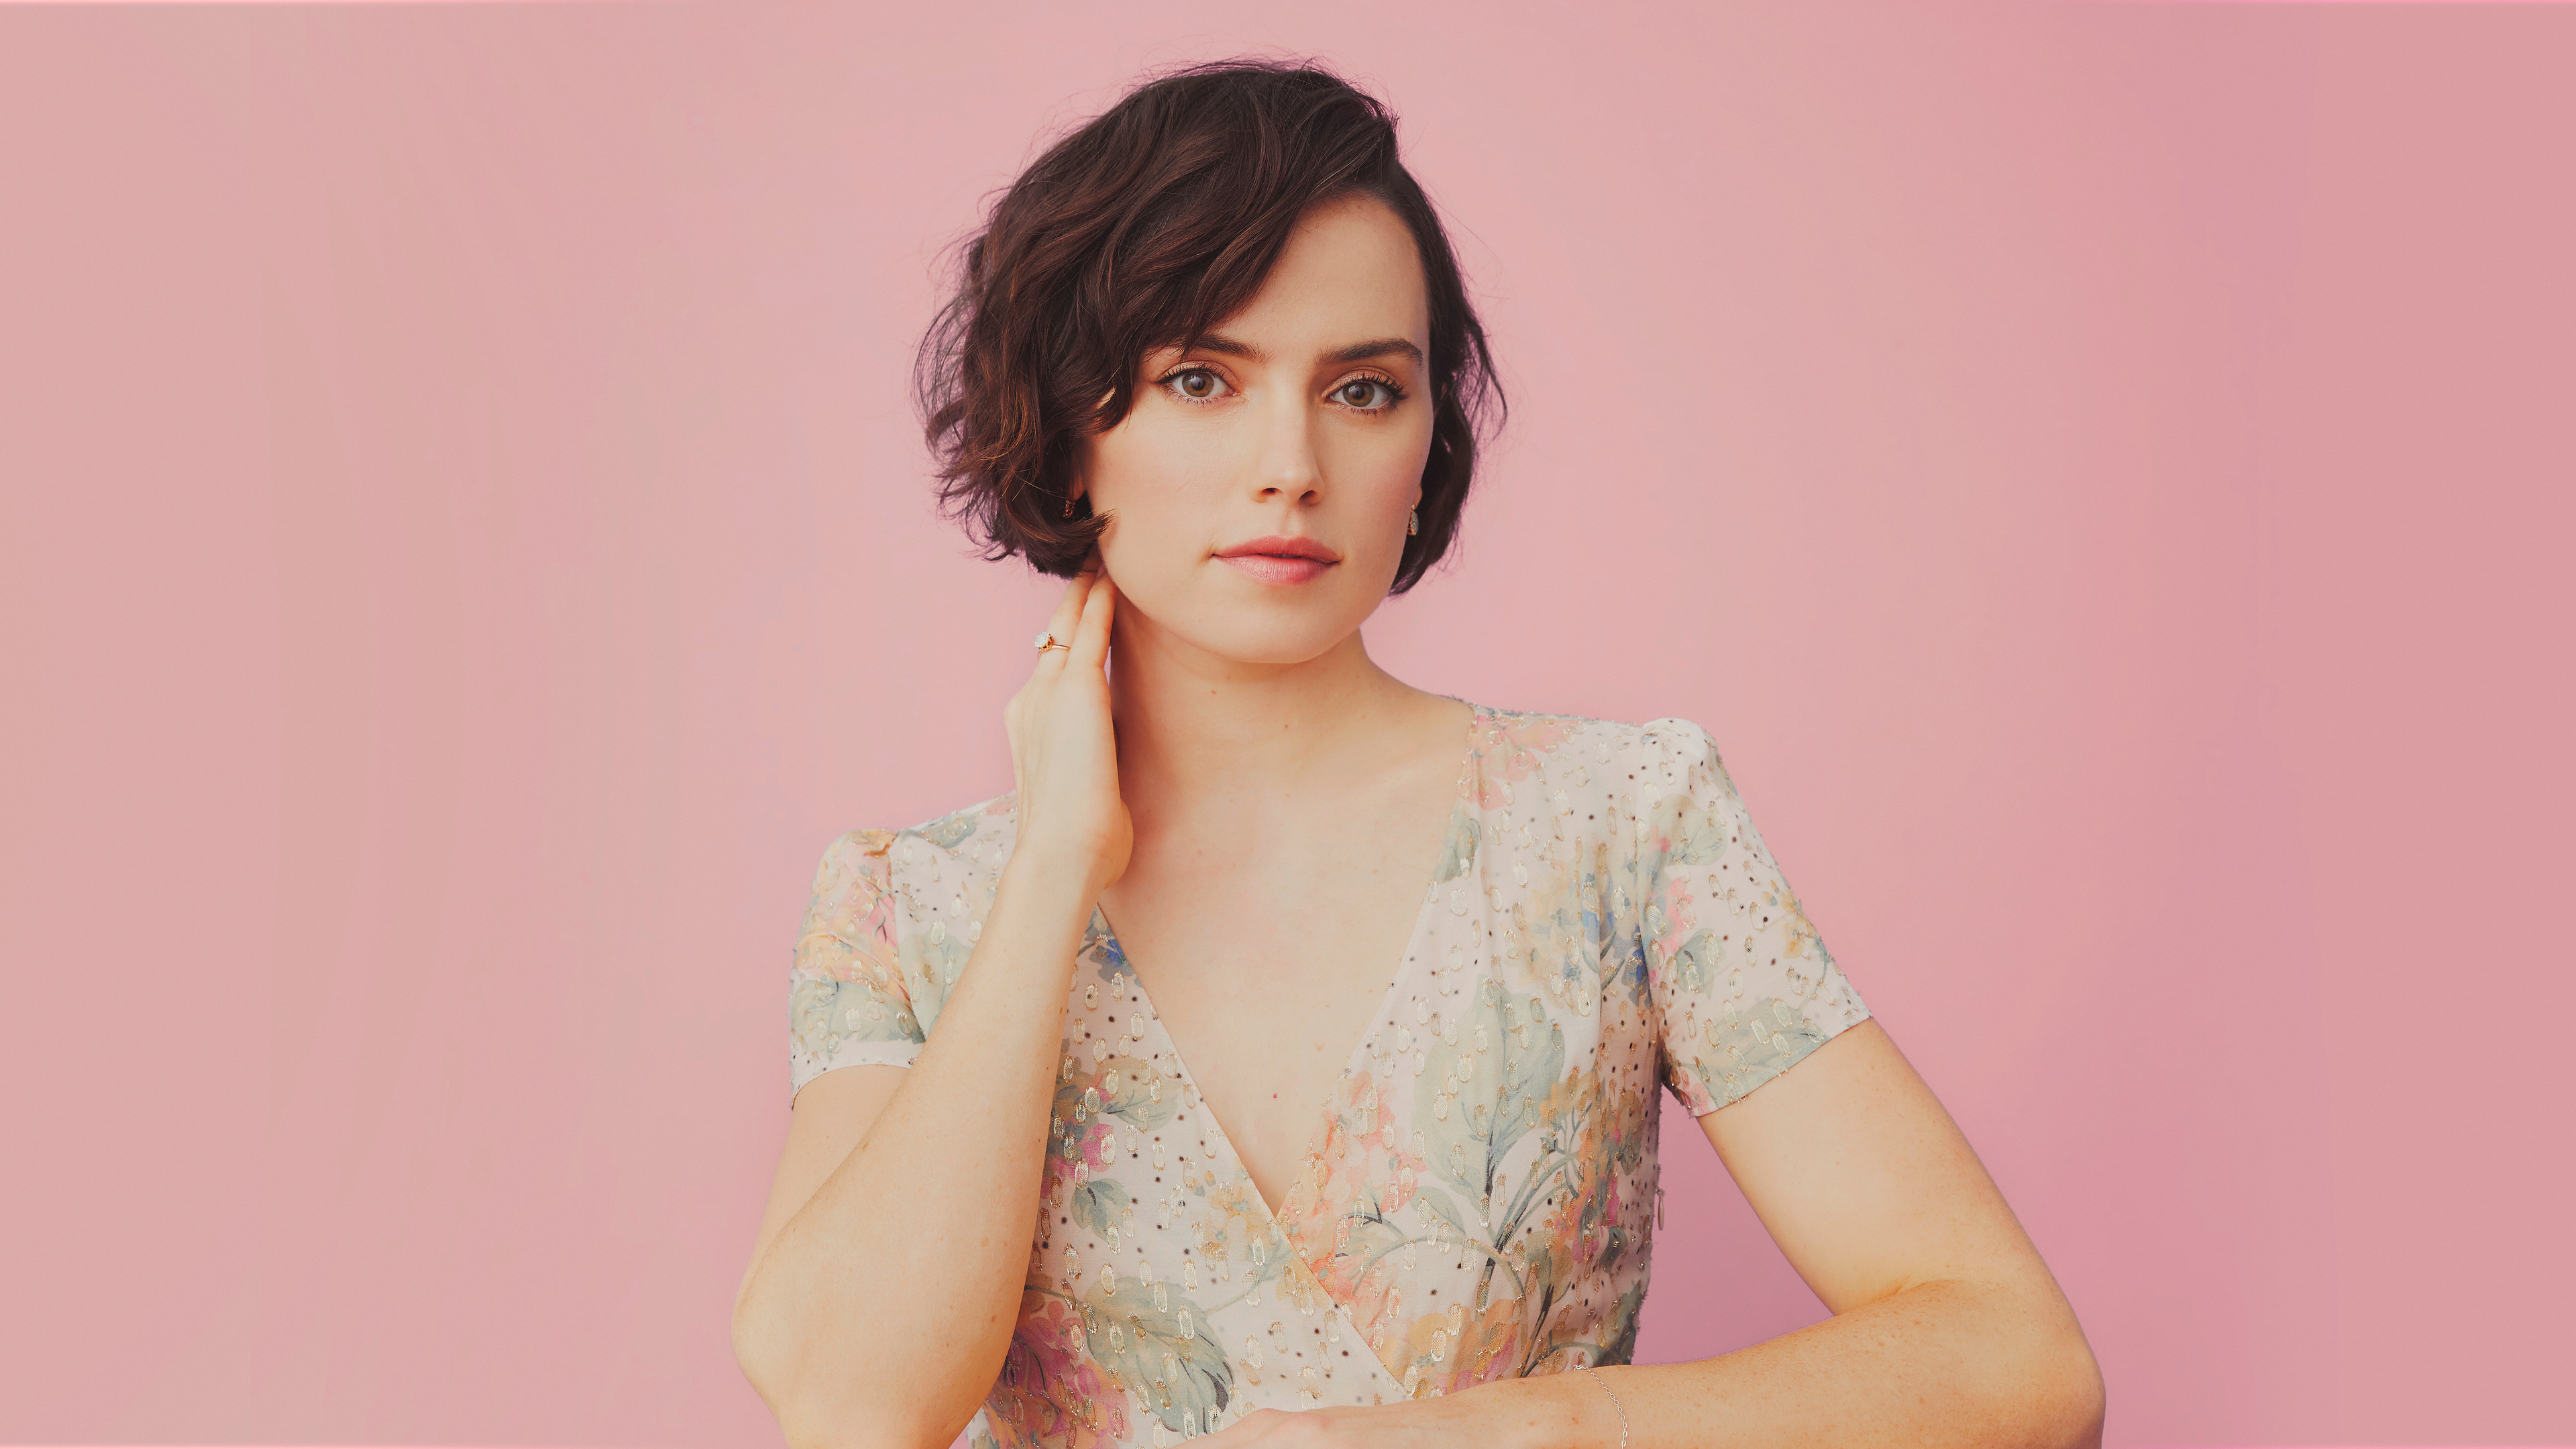 daisy ridley bustle 2019 1563222436 - Daisy Ridley Bustle 2019 - hd-wallpapers, girls wallpapers, daisy ridley wallpapers, celebrities wallpapers, 5k wallpapers, 4k-wallpapers